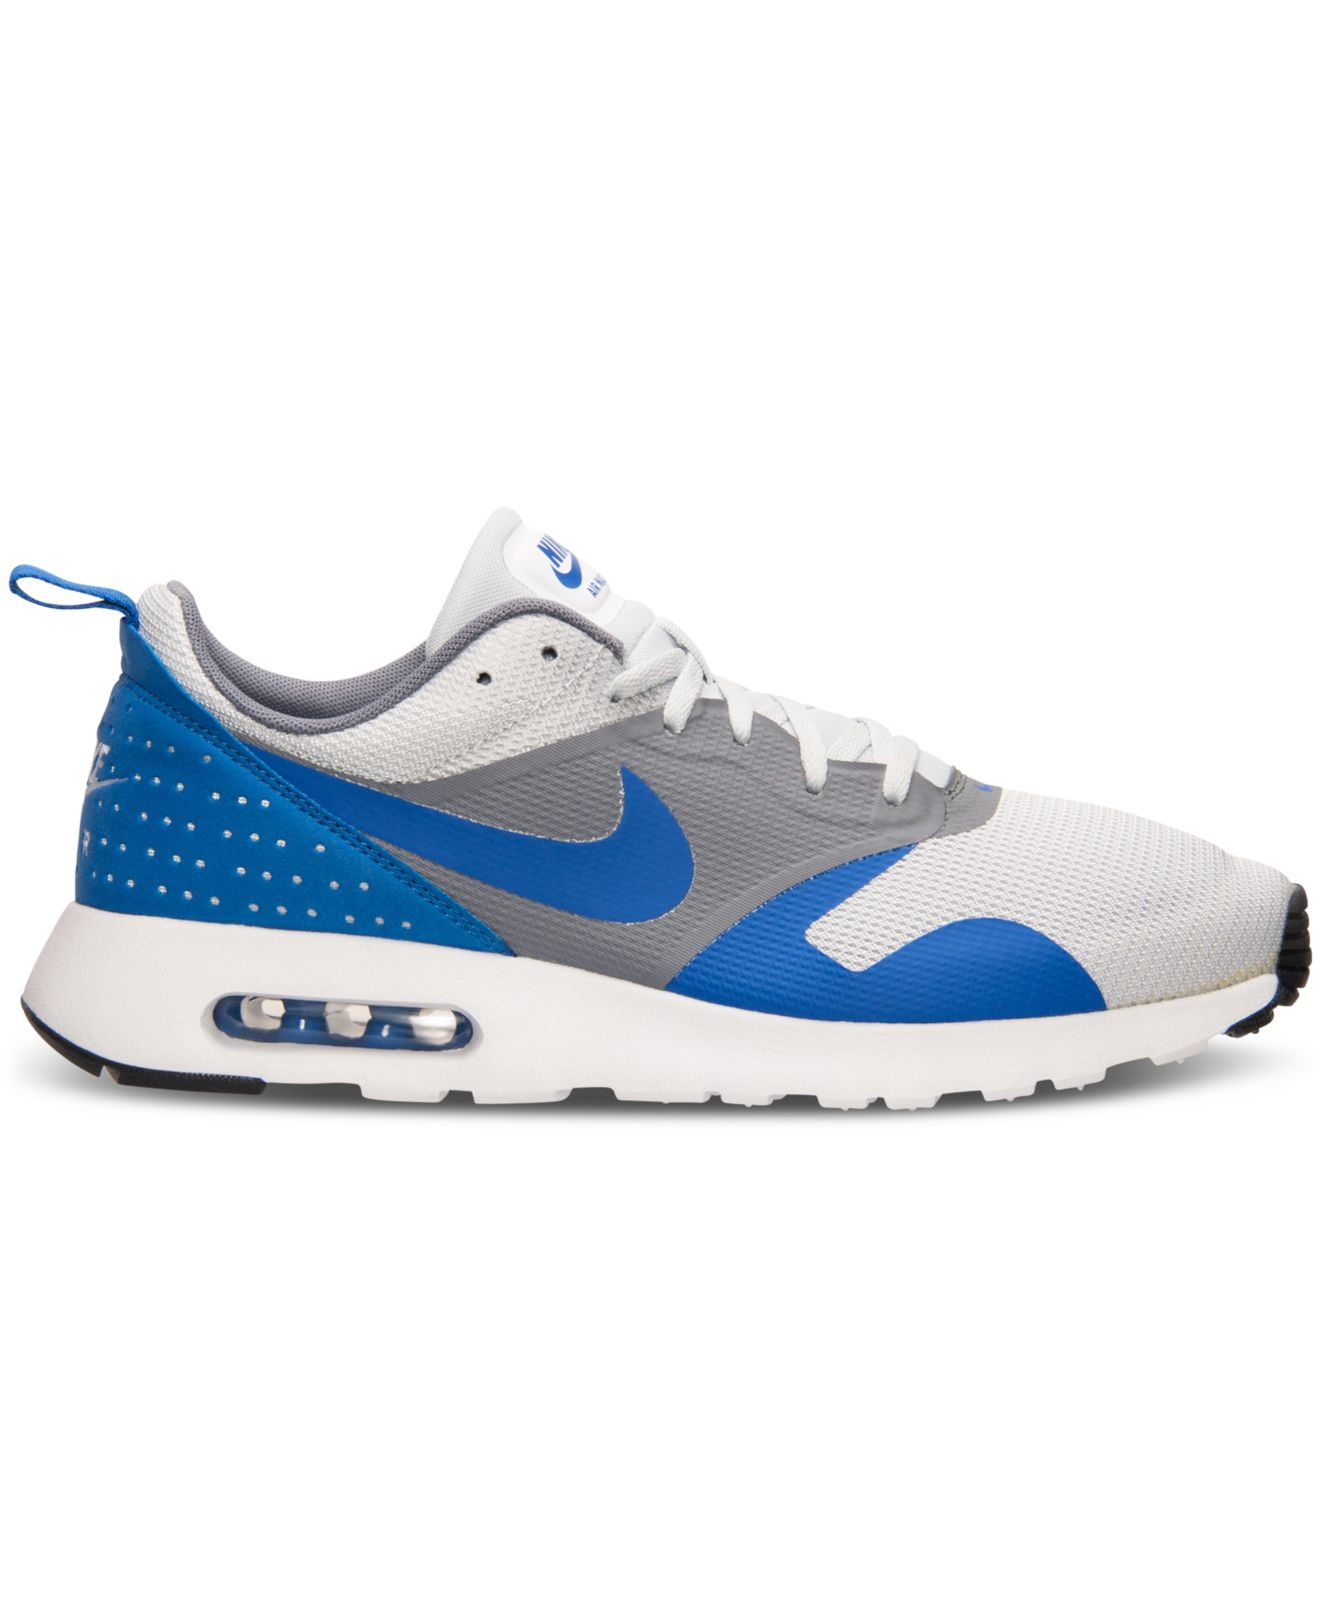 low priced 66a35 b62b4 ... Lyst - Nike Mens Air Max Tavas Running Sneakers From Finish Line in  Blue for Men ...